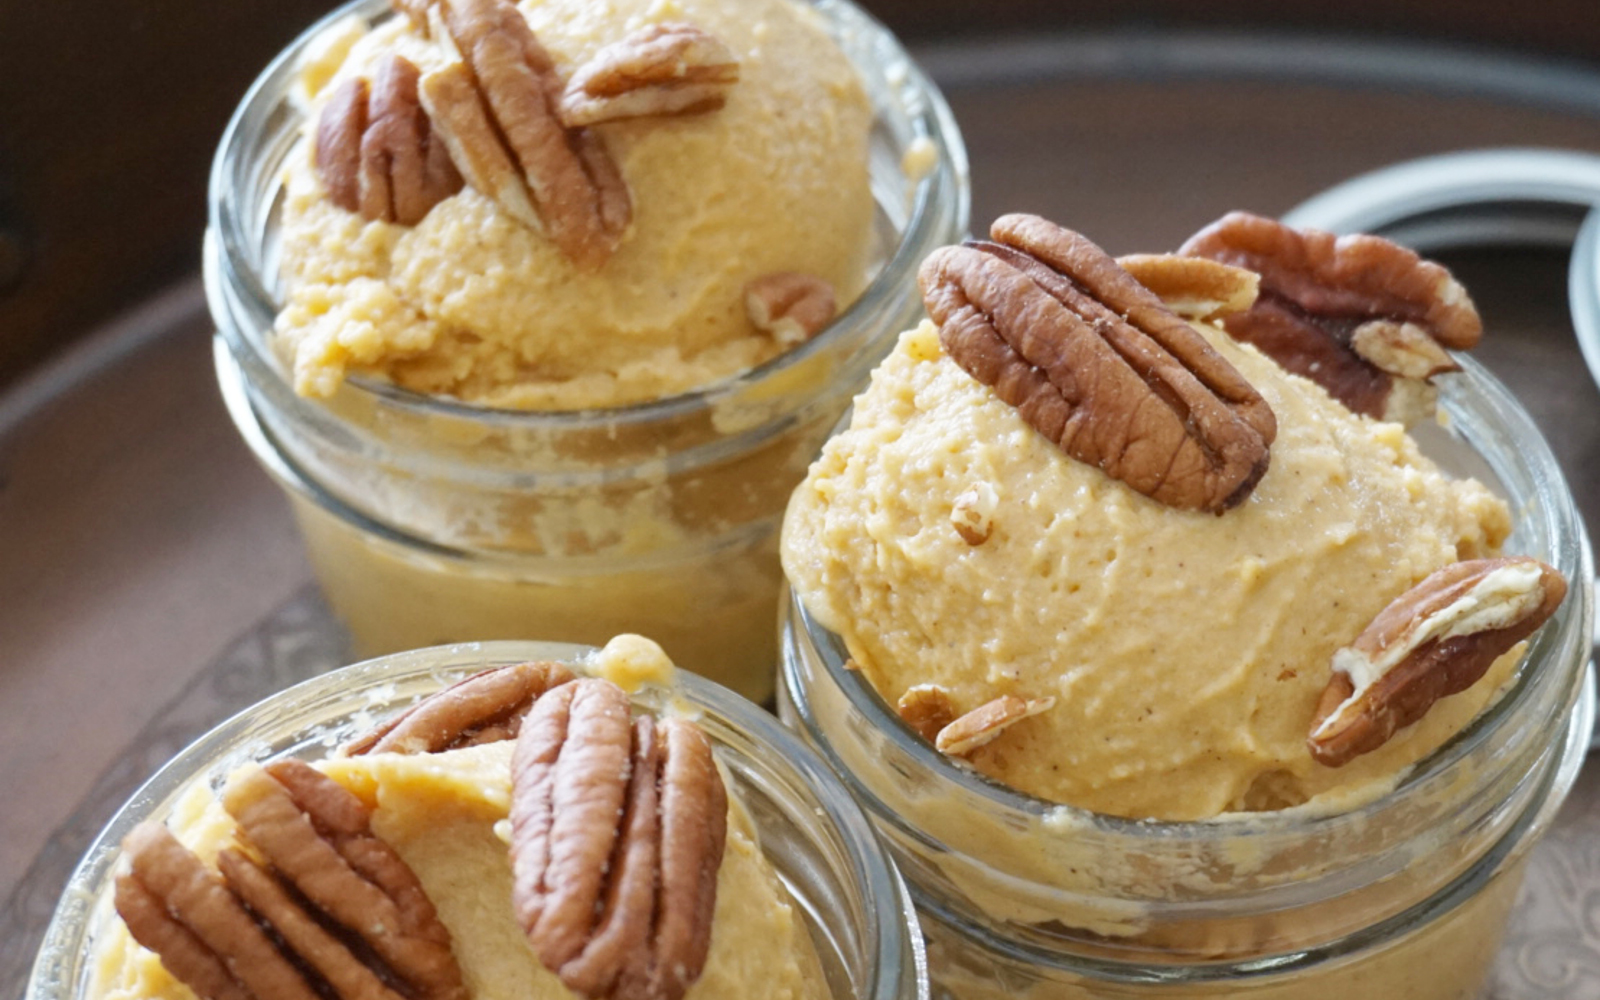 Sweet Potato Ice Cream